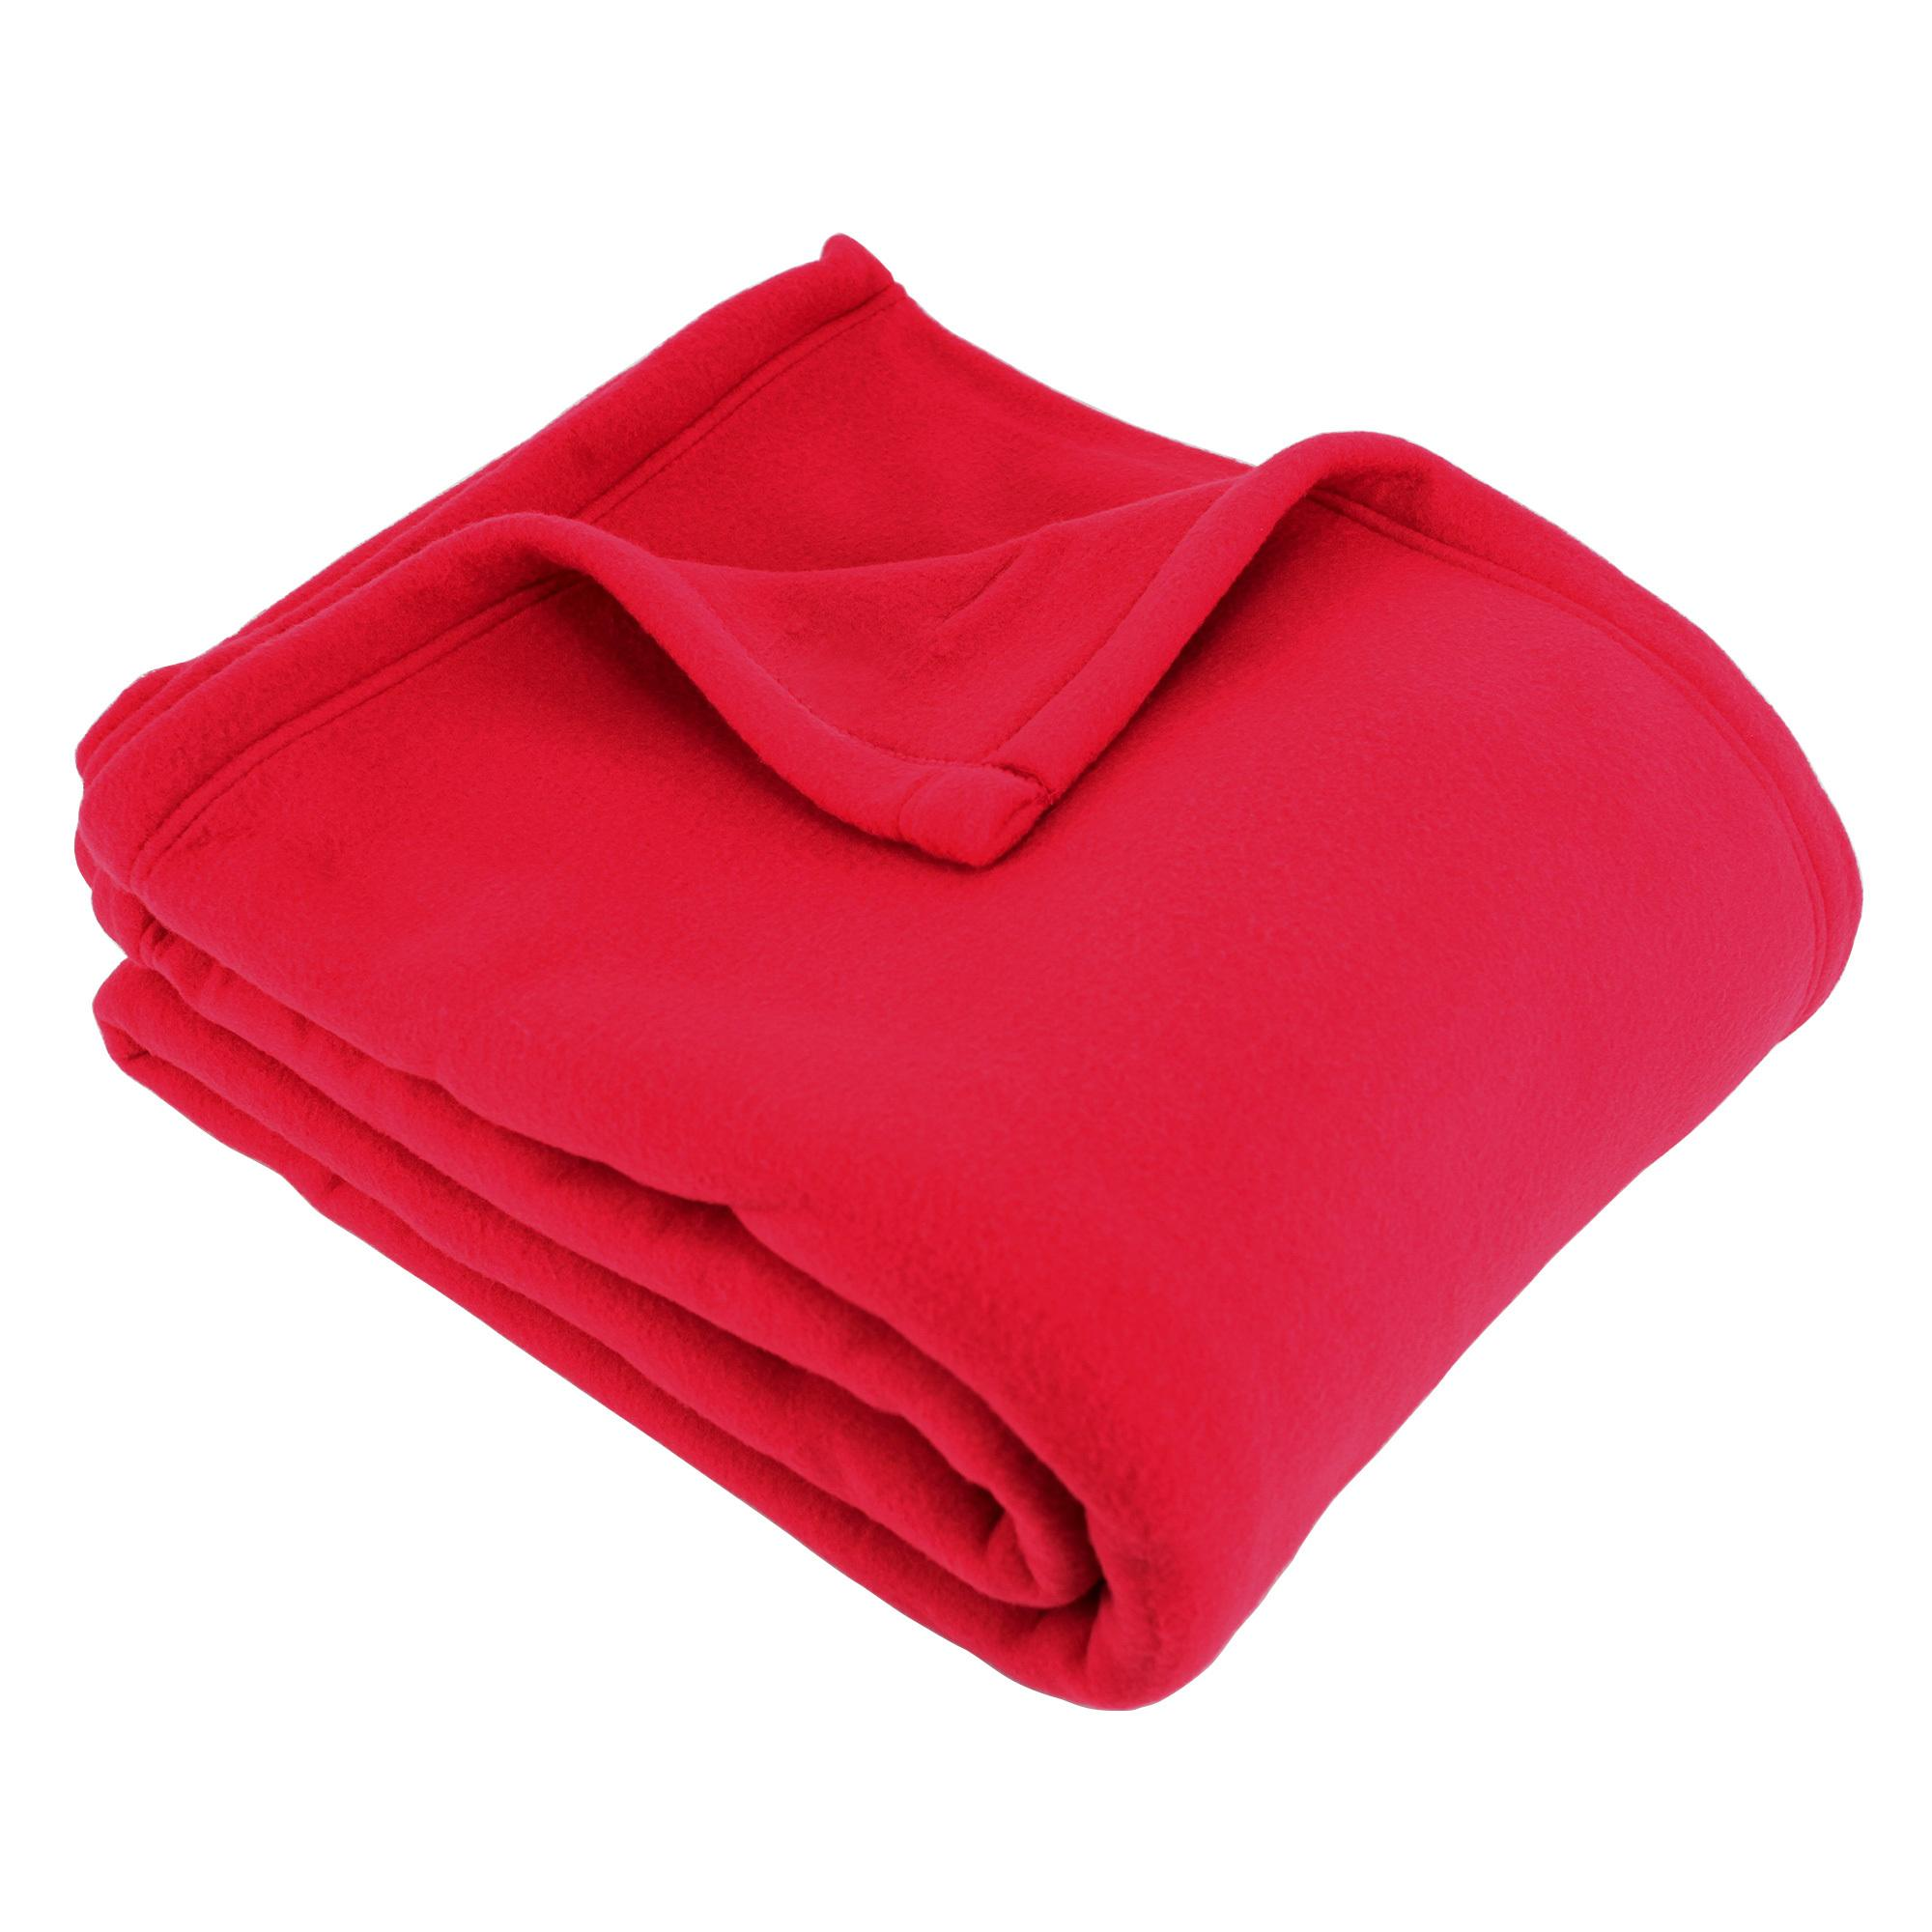 couverture polaire 180x220 100 polyester 350g m2 teddy rouge cerise ebay. Black Bedroom Furniture Sets. Home Design Ideas